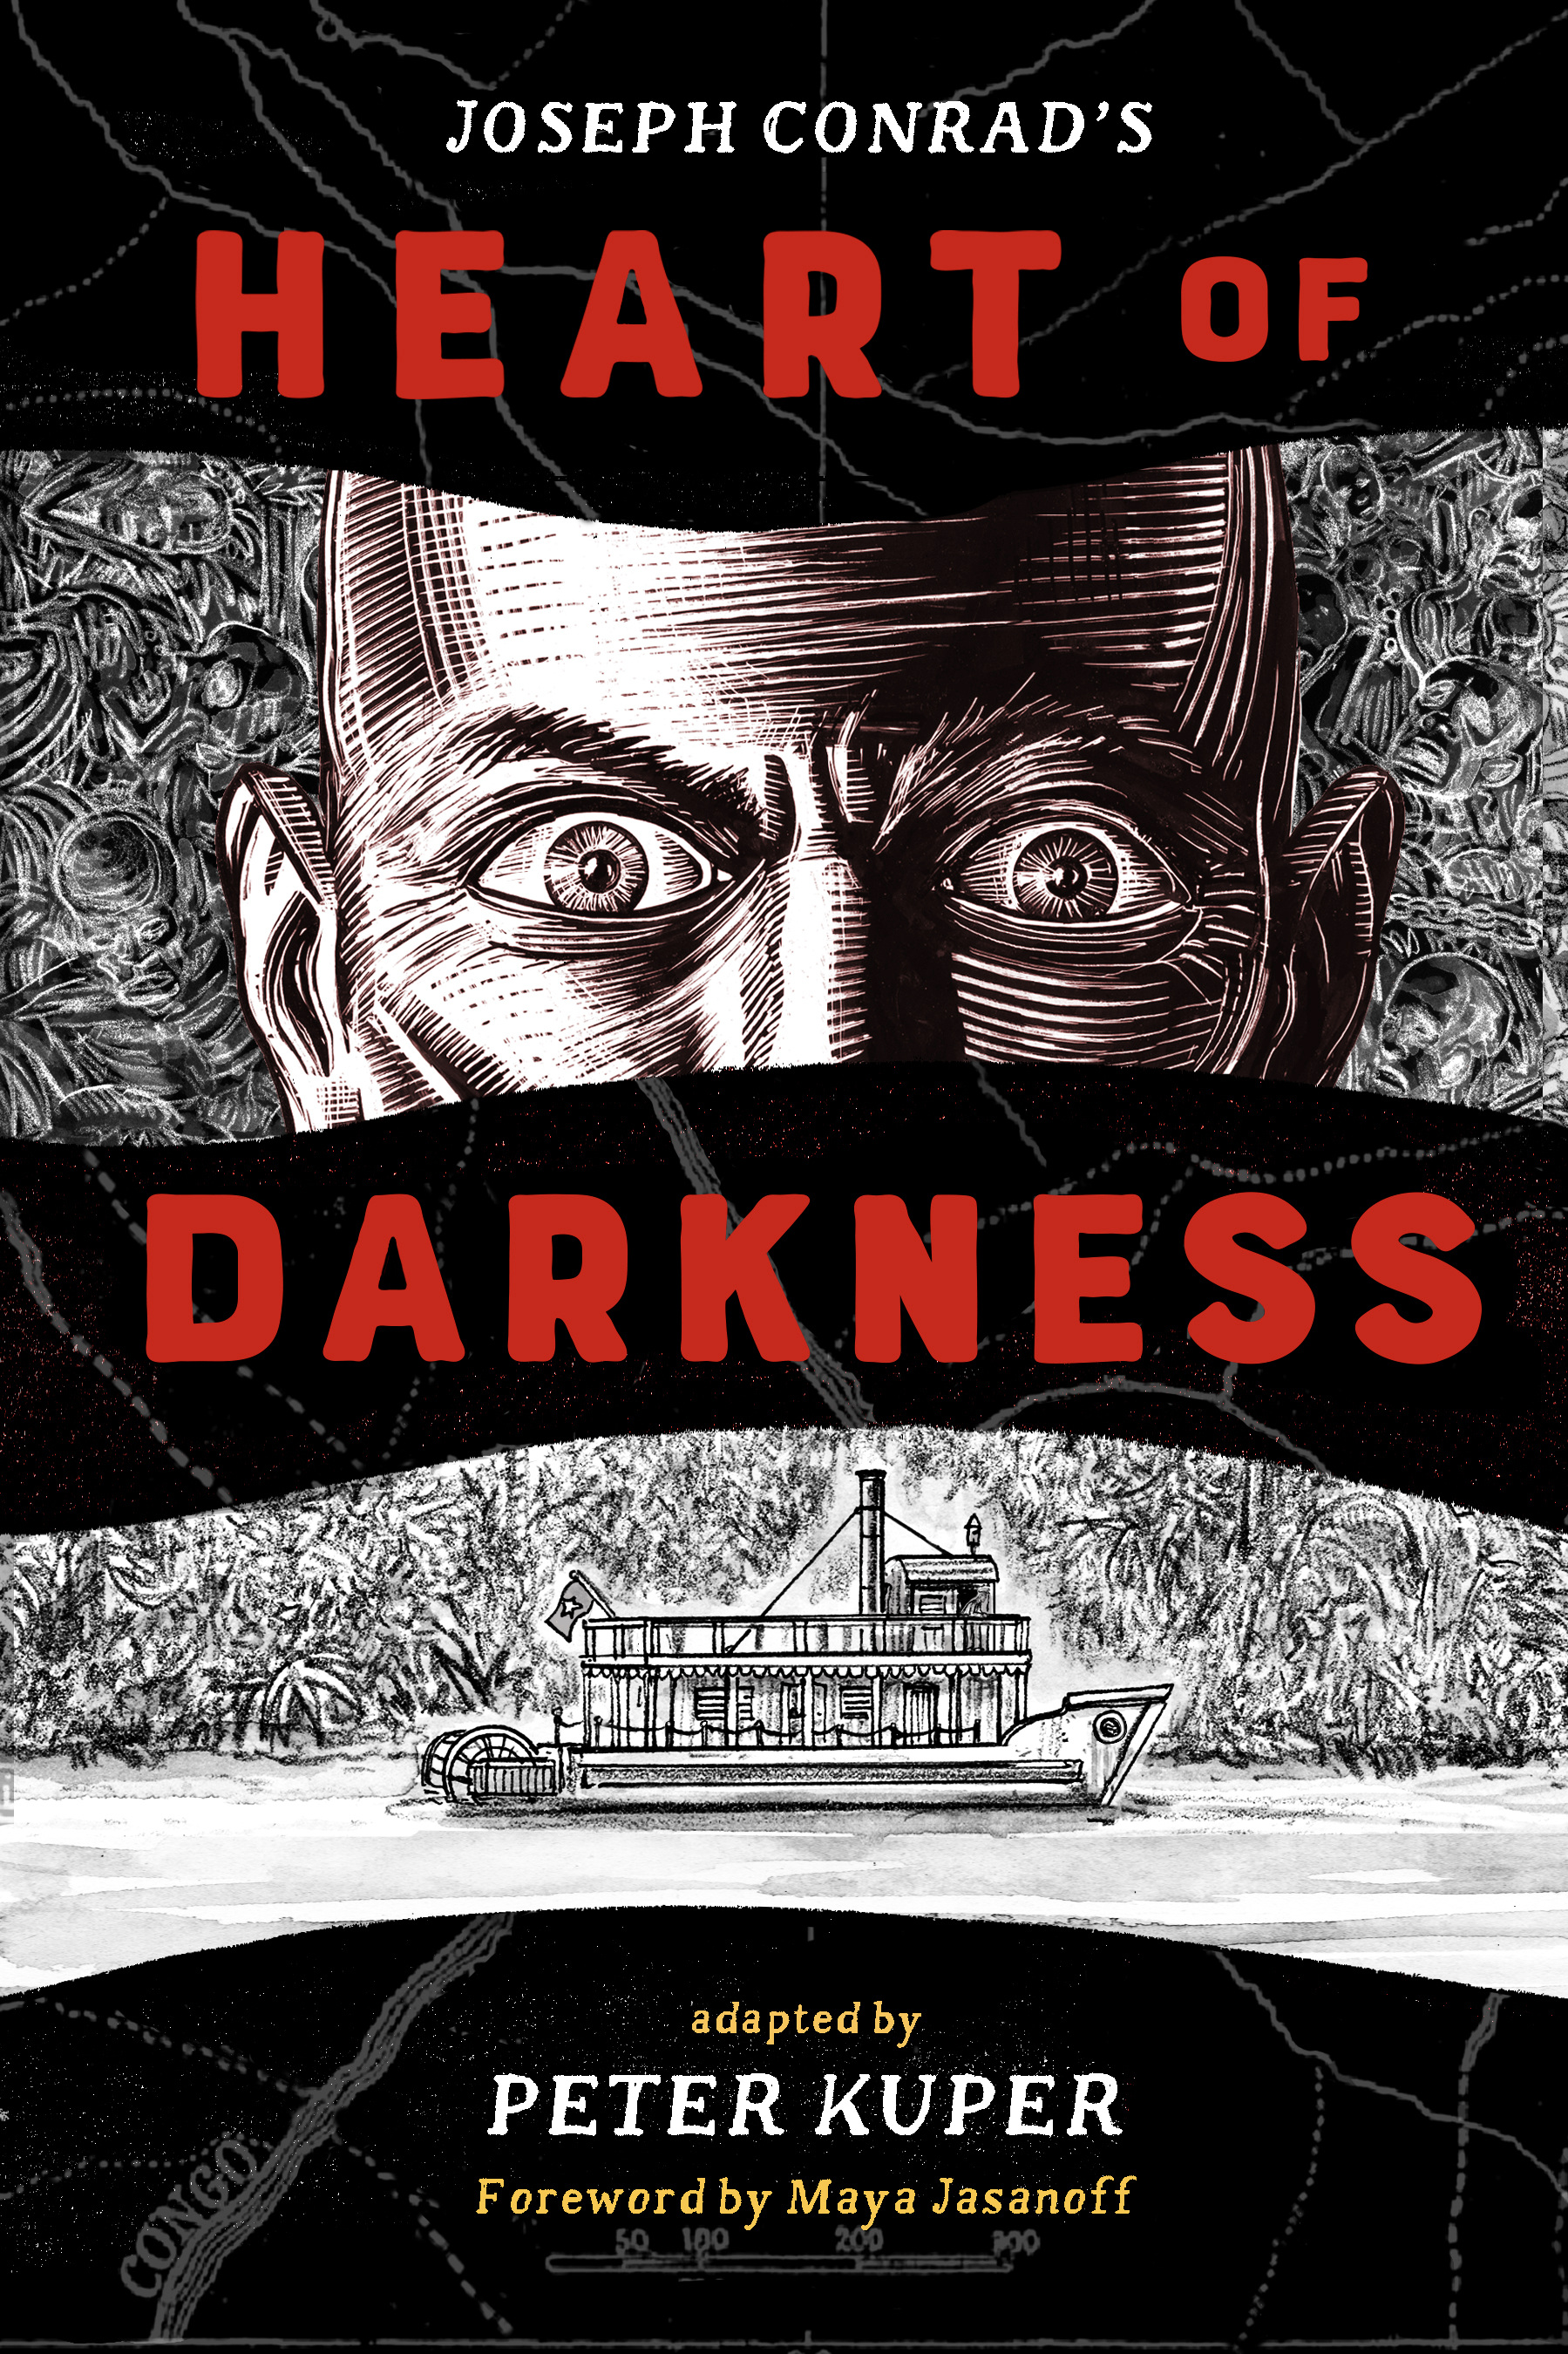 Heart of Darkness - NEW from W. W. NortonISBN 978-0-393-63564-5Heart of Darkness: has unsettled generations of readers with its haunting portrait of colonialism in Africa. Acclaimed illustrator Peter Kuper delivers a visually immersive and profoundly complex interpretation of this controversial classic evoking the danger and suspense at the heart of this brutal story. His images and concise text confront Joseph Conrad's colonial attitudes and Europe's systemic racism yet leave room for readers to engage with these issues on their own terms. Longtime admirers of the novella will appreciate his innovative interpretations, while new readers will discover a brilliant introduction to a canonical work of twentieth-century literature.